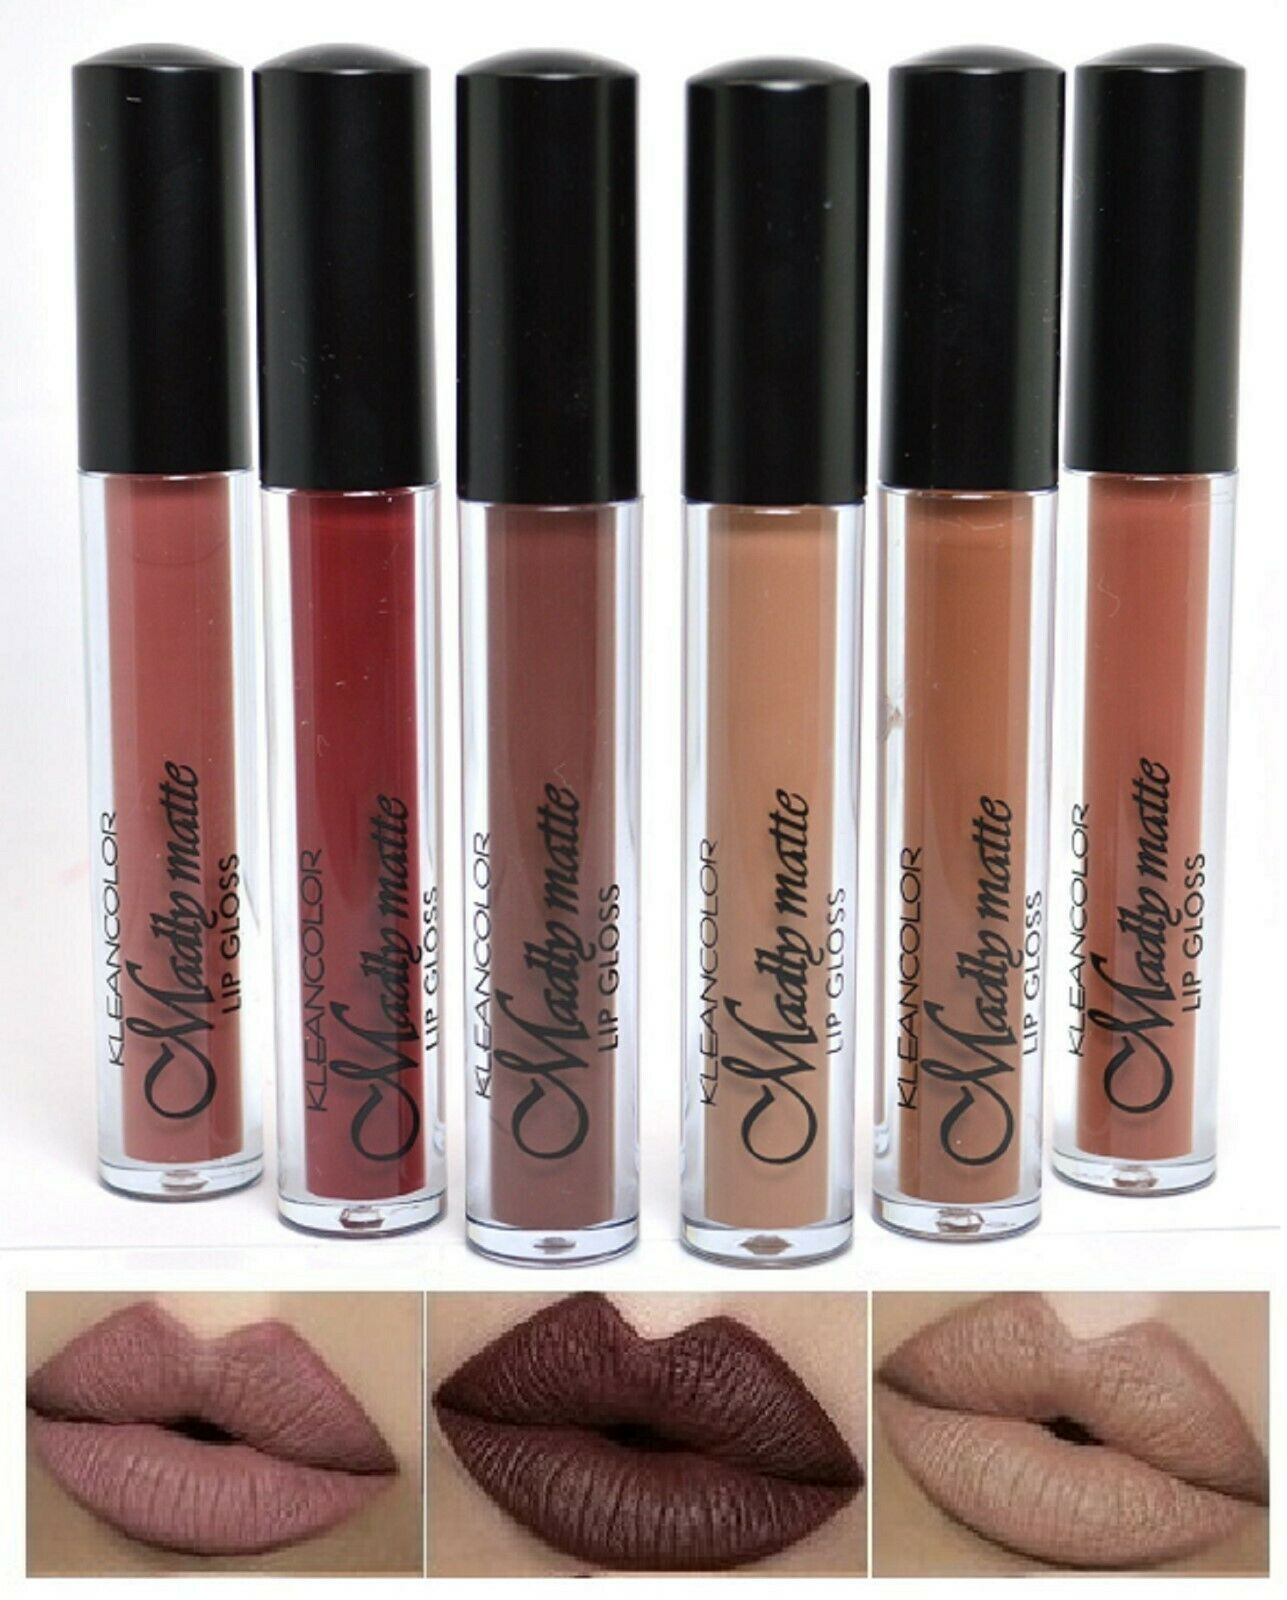 6 NEW Waterproof Long Lasting Makeup Lip Liquid Matte Lipsti